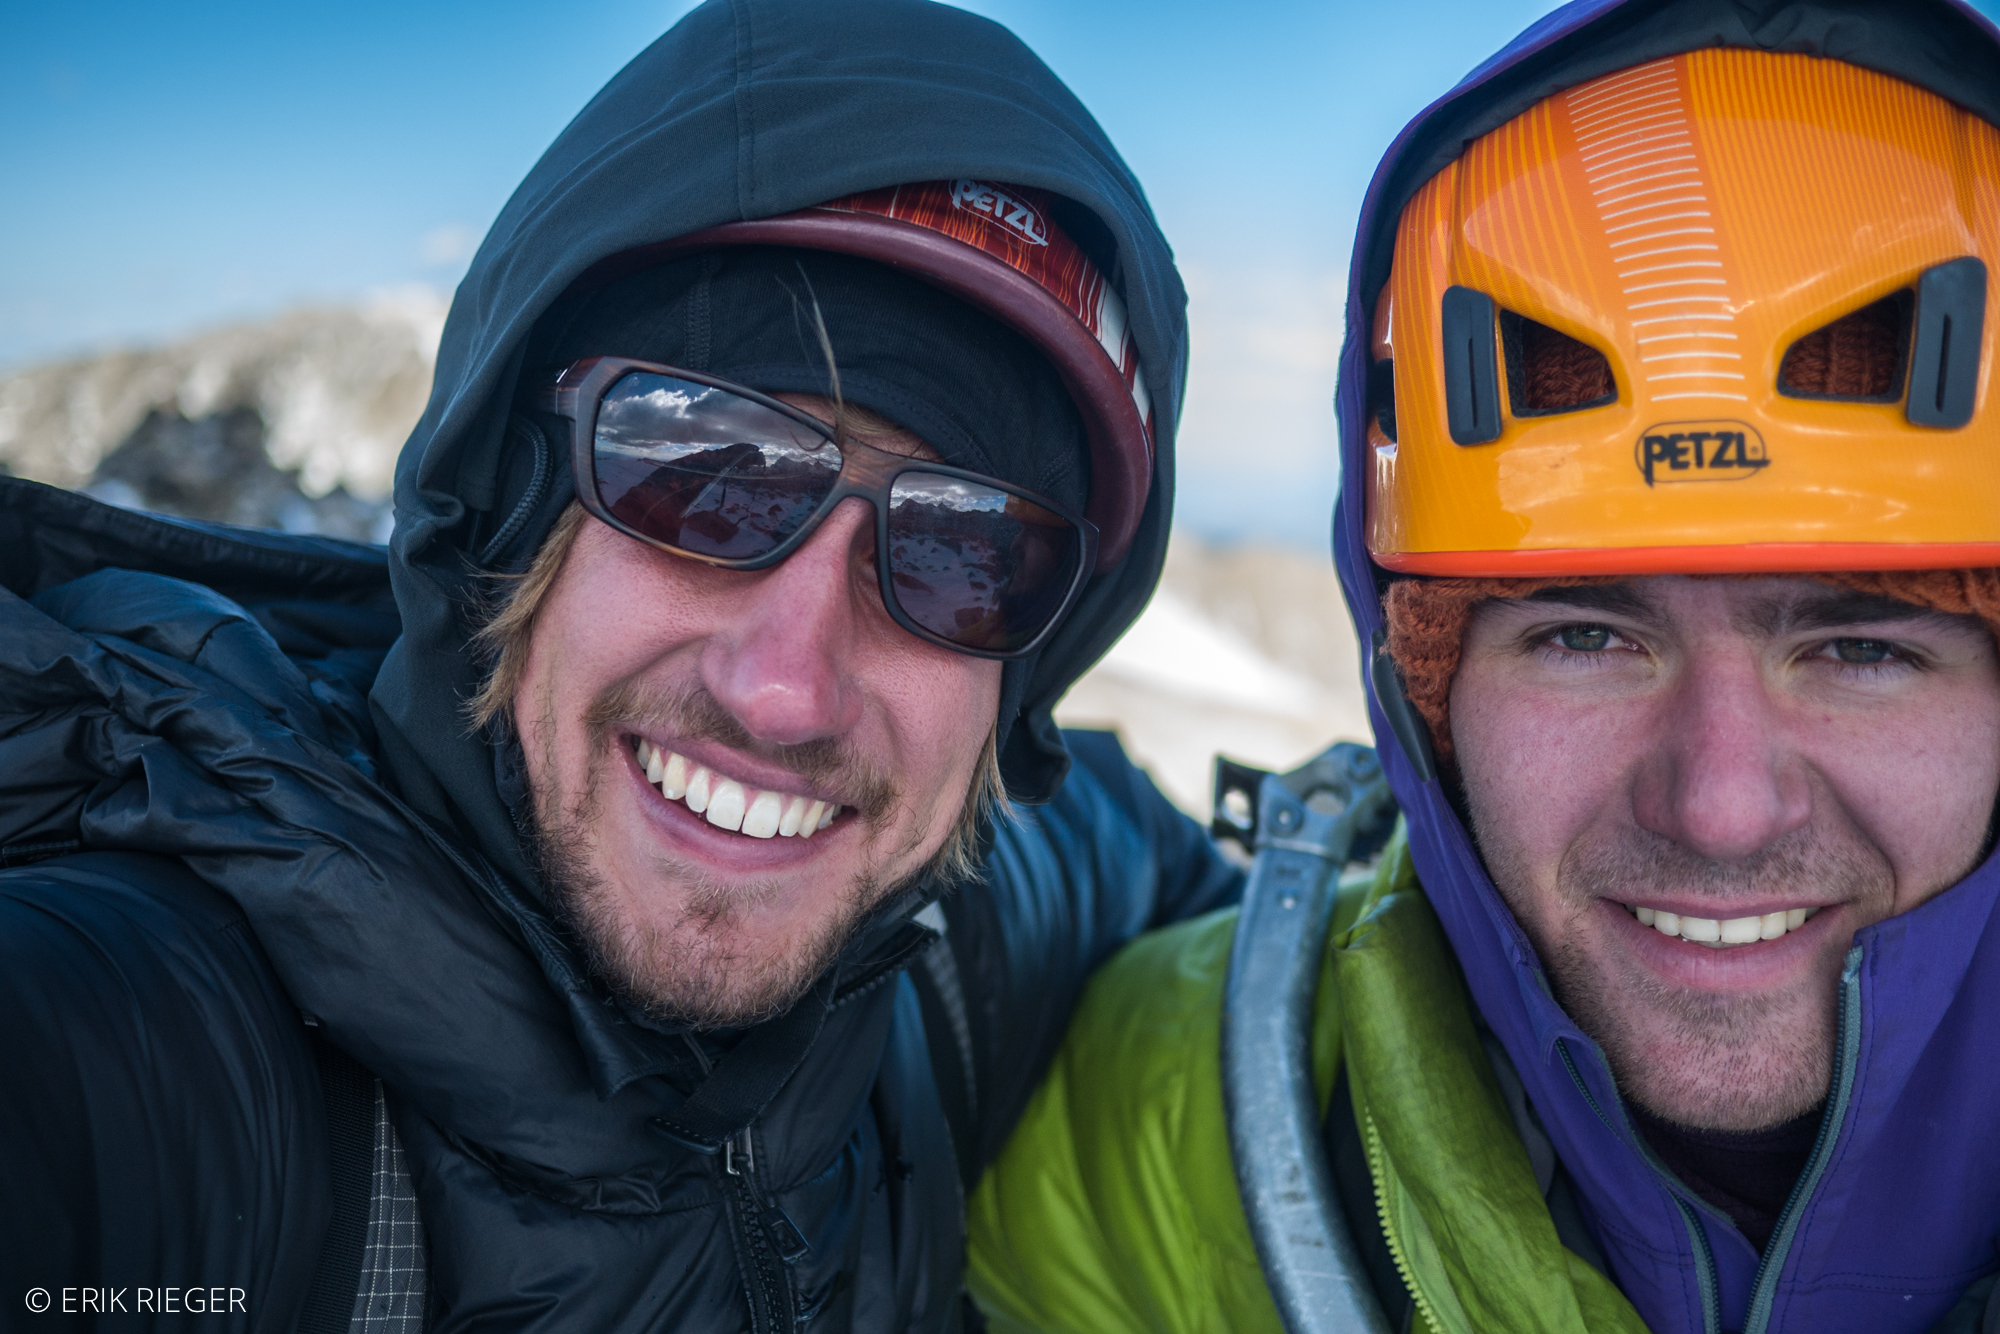 Erik Rieger (left) and JD Merritt (right) atop Peak 12,878 after making the first ascent of Stalker.